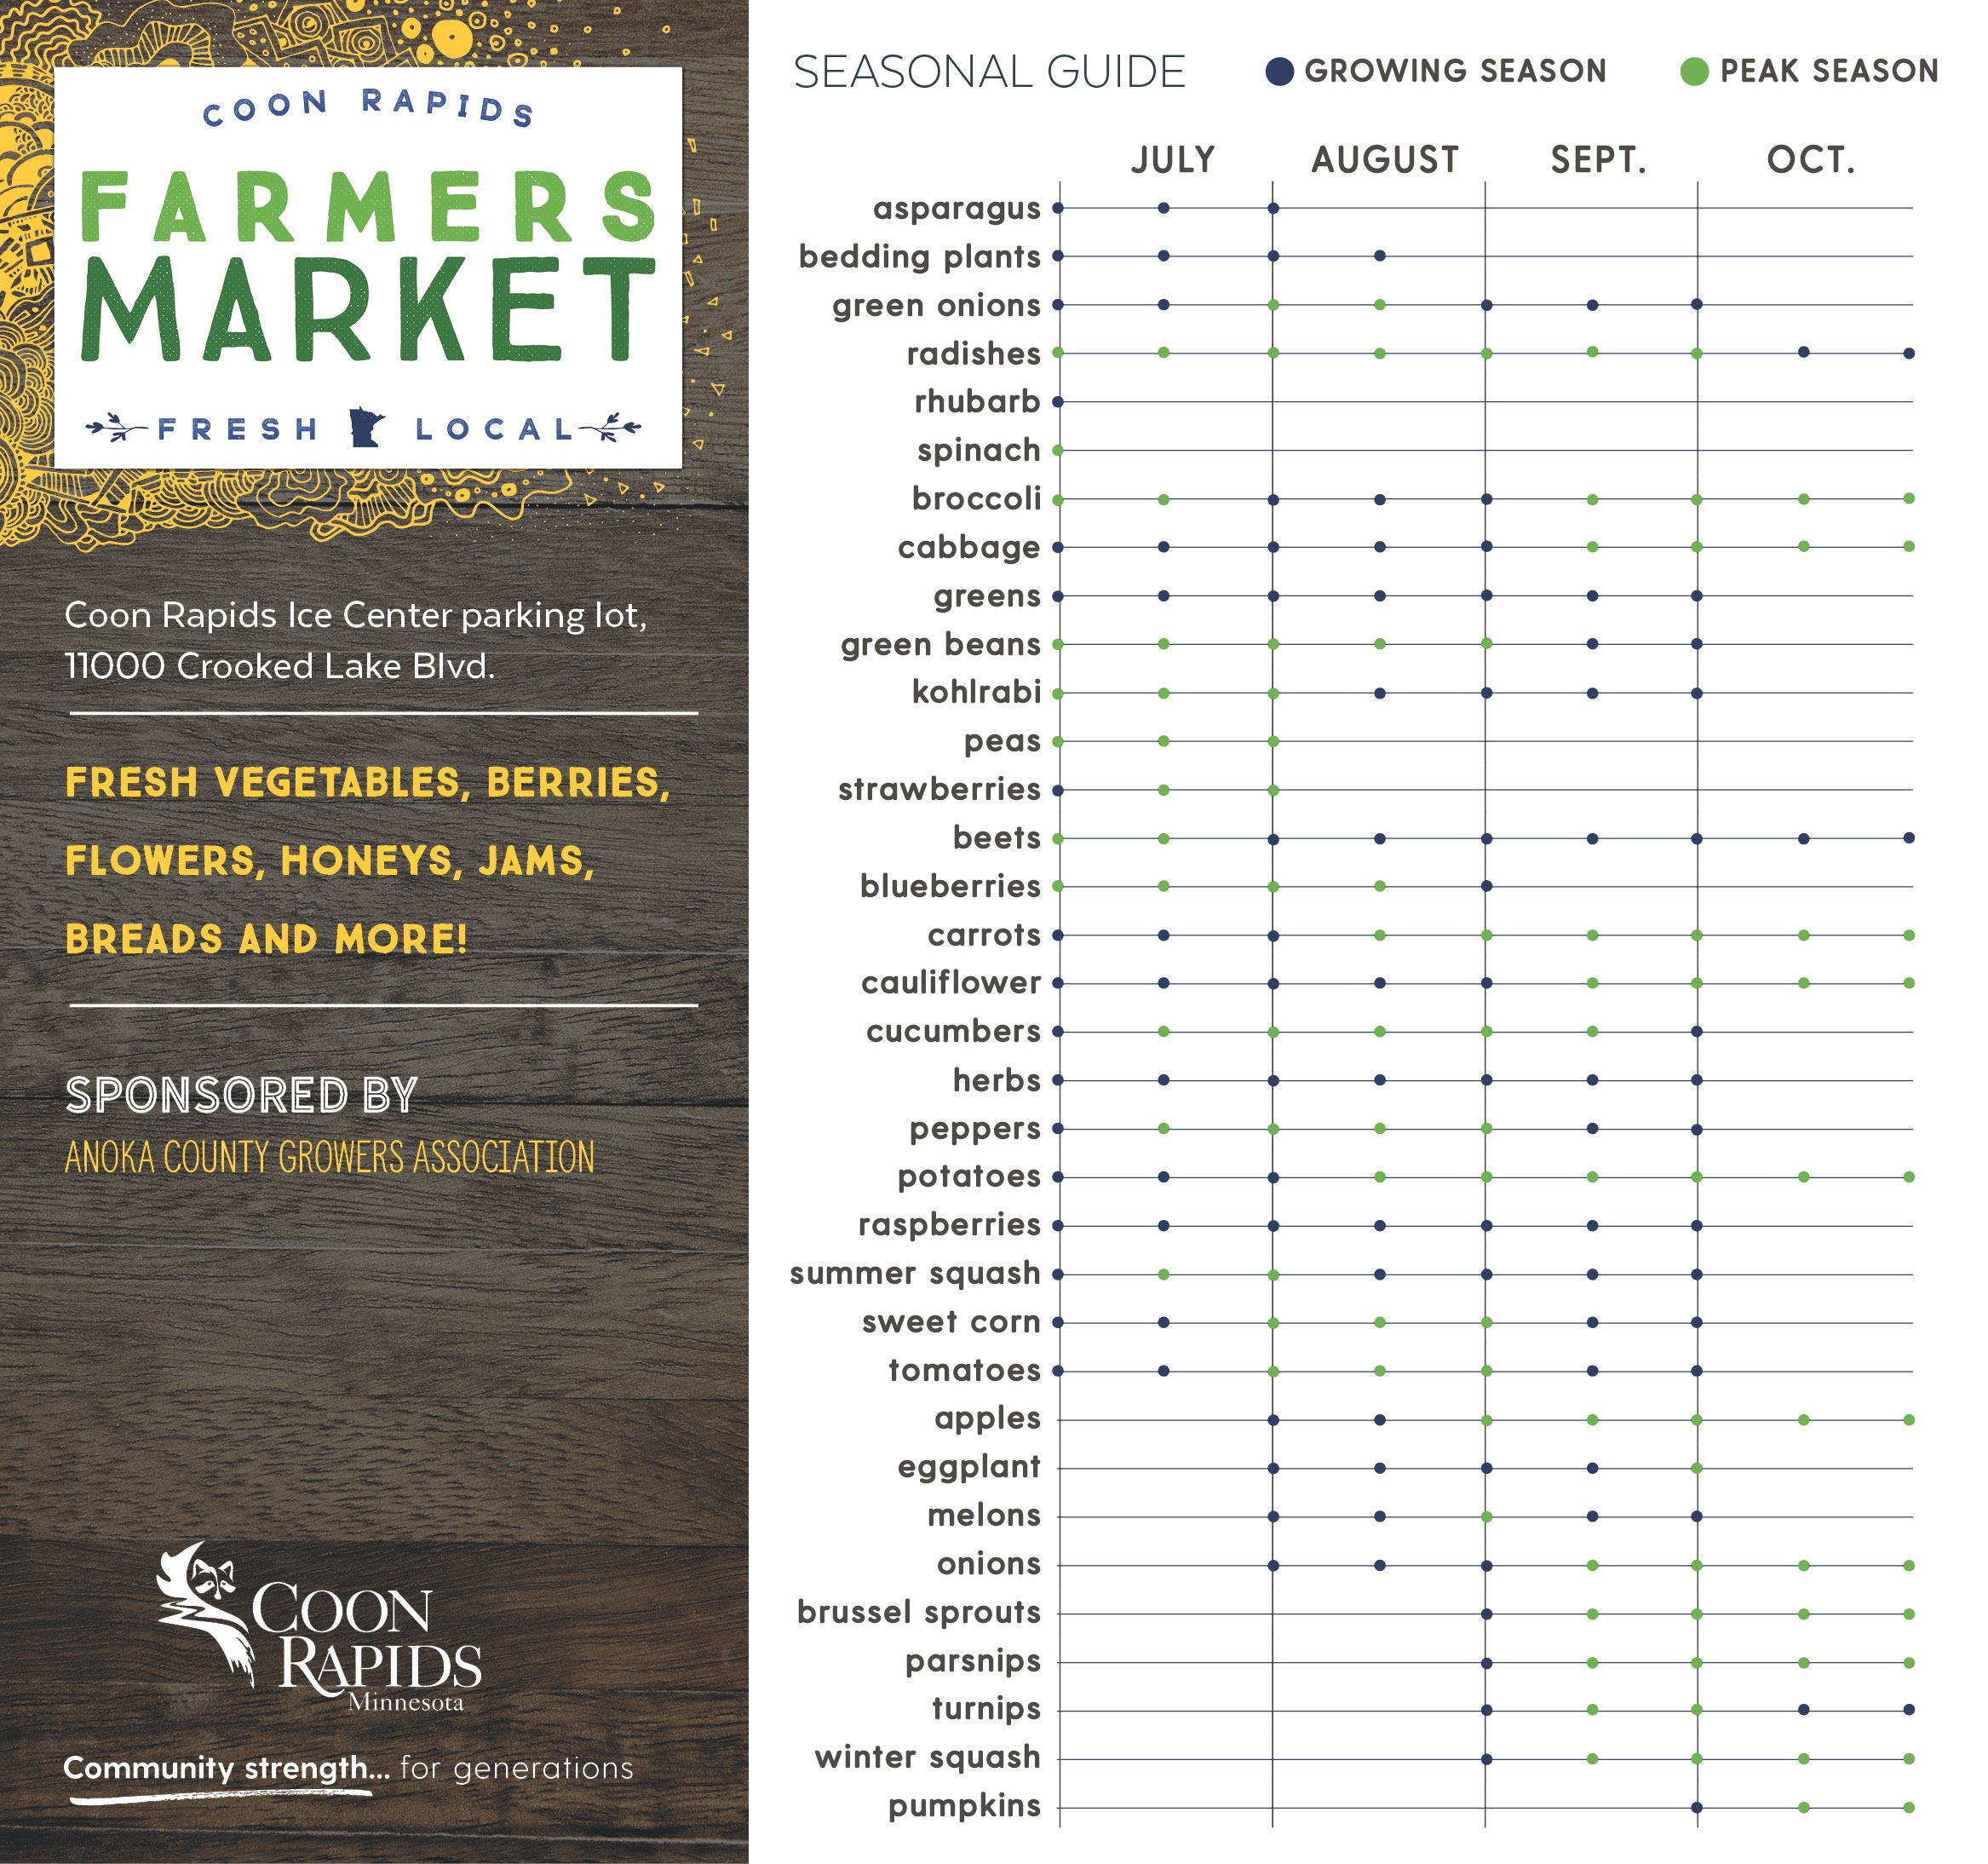 Farmers Market Seasonal Guide